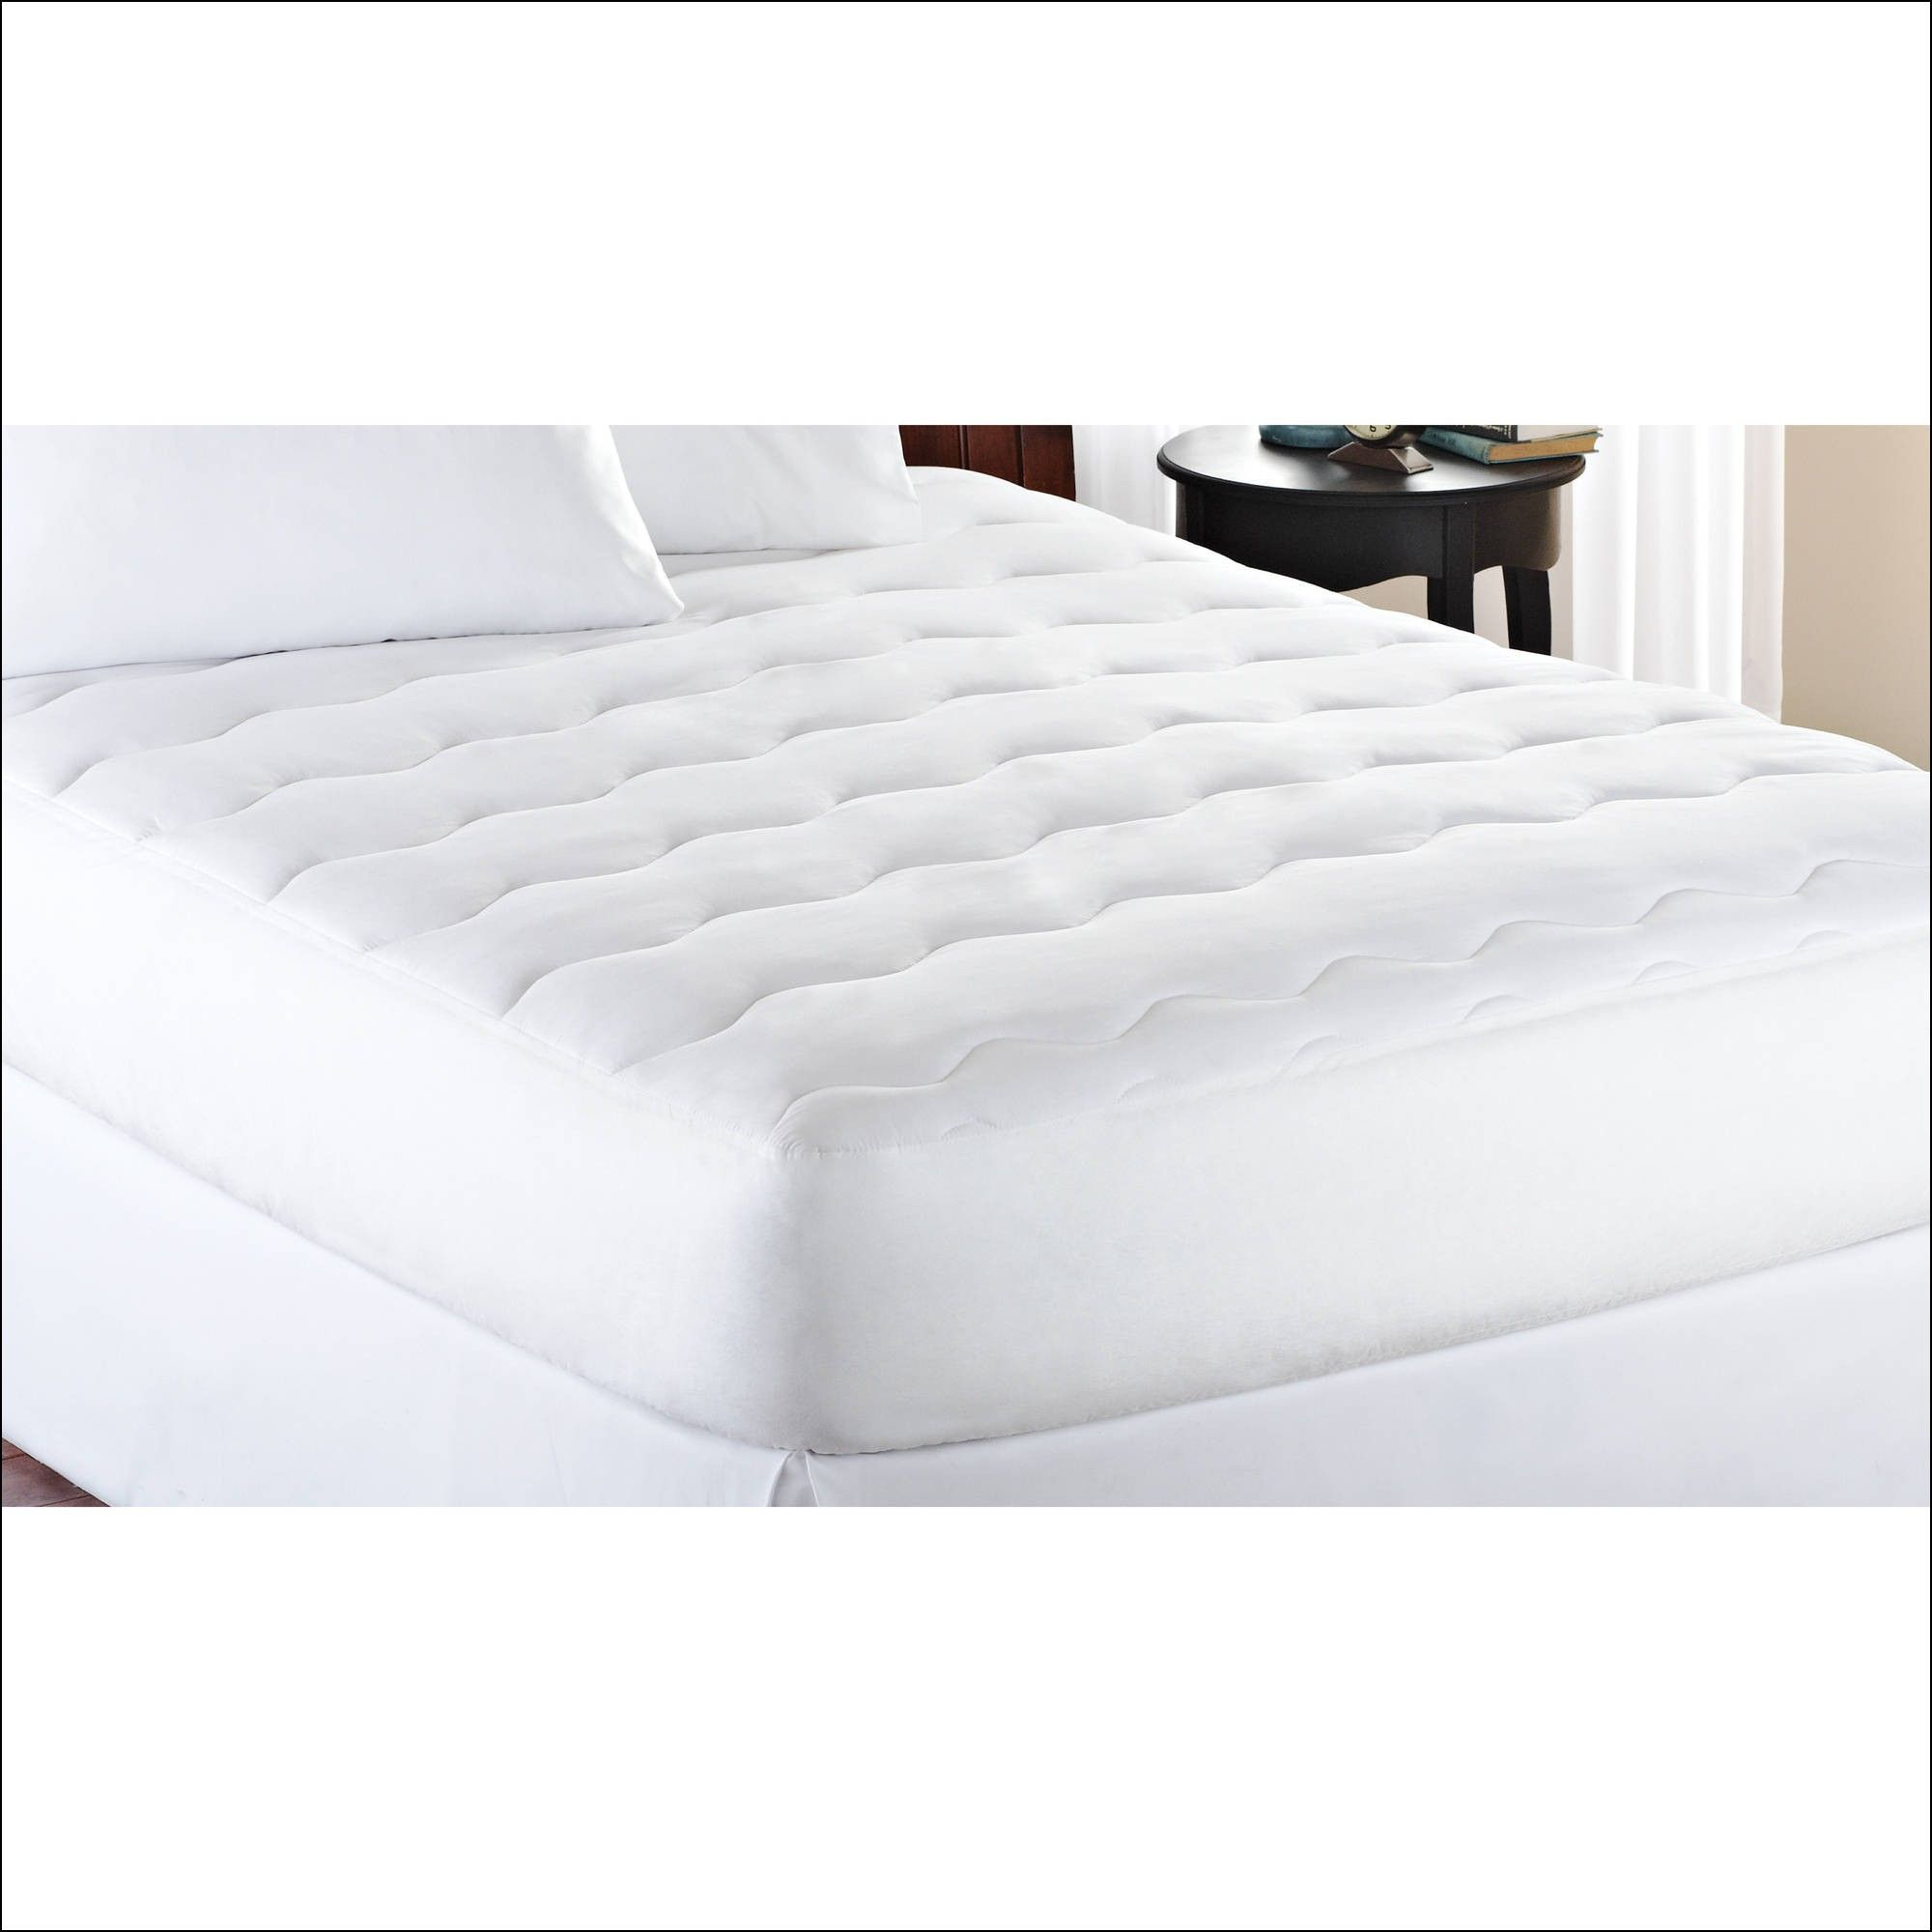 use for pillow added security comfort home pads design mattress top